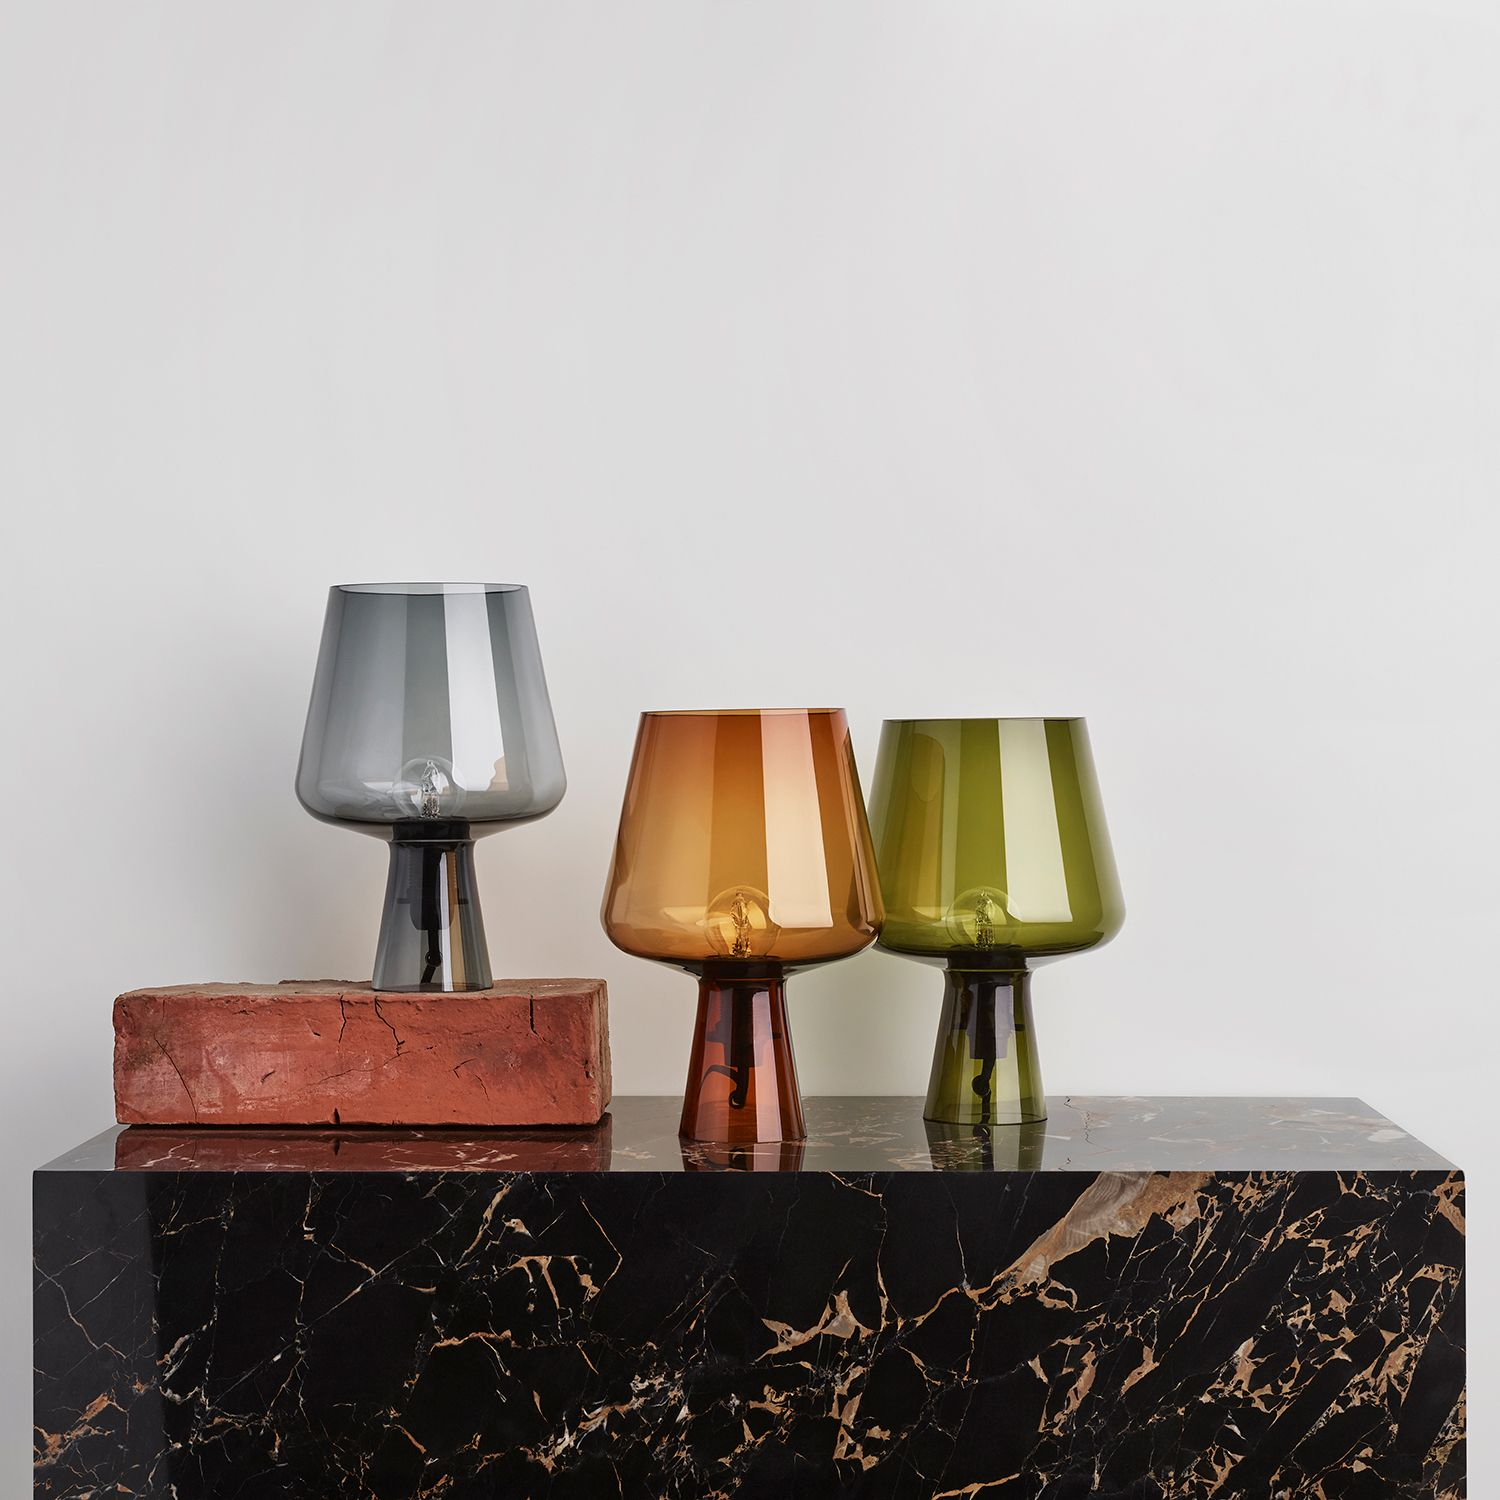 This elegant bronze lamp might just be the perfect touch to